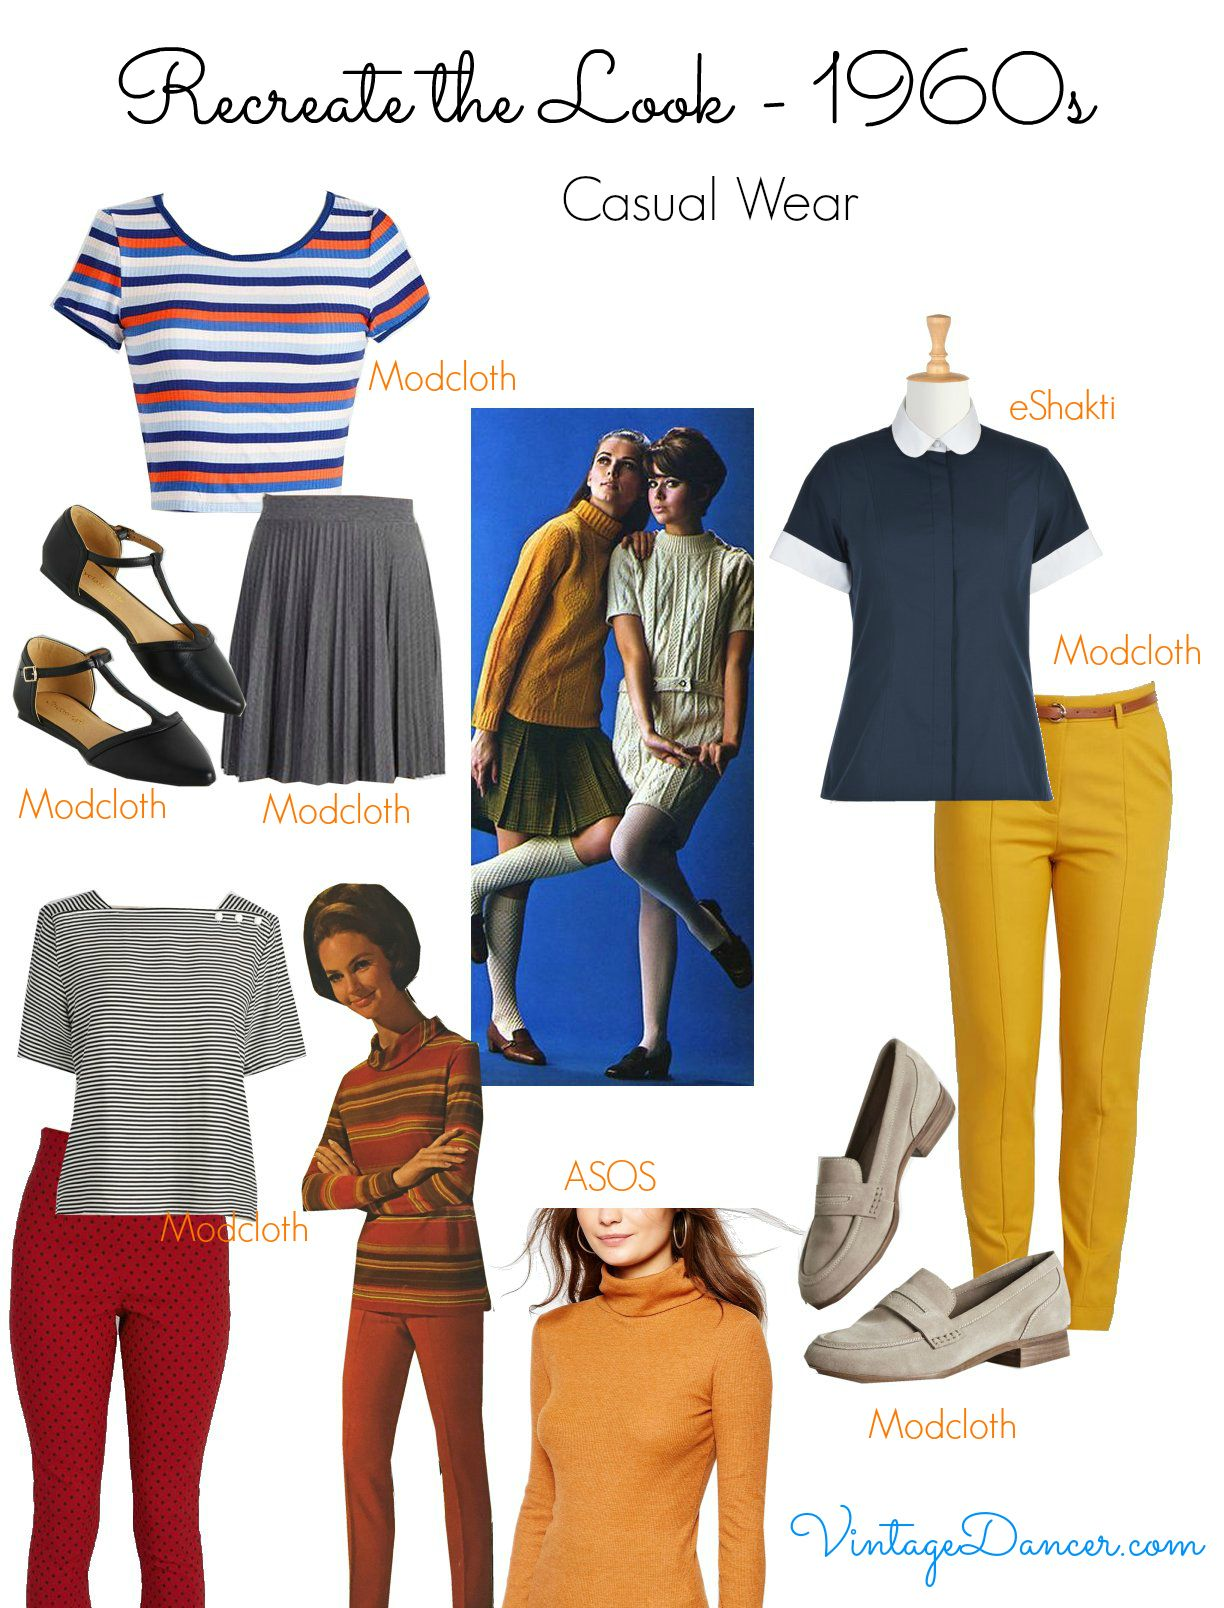 60s Mod Clothing Outfit Ideas 1960s Outfits 1960s Fashion 1960 Outfits